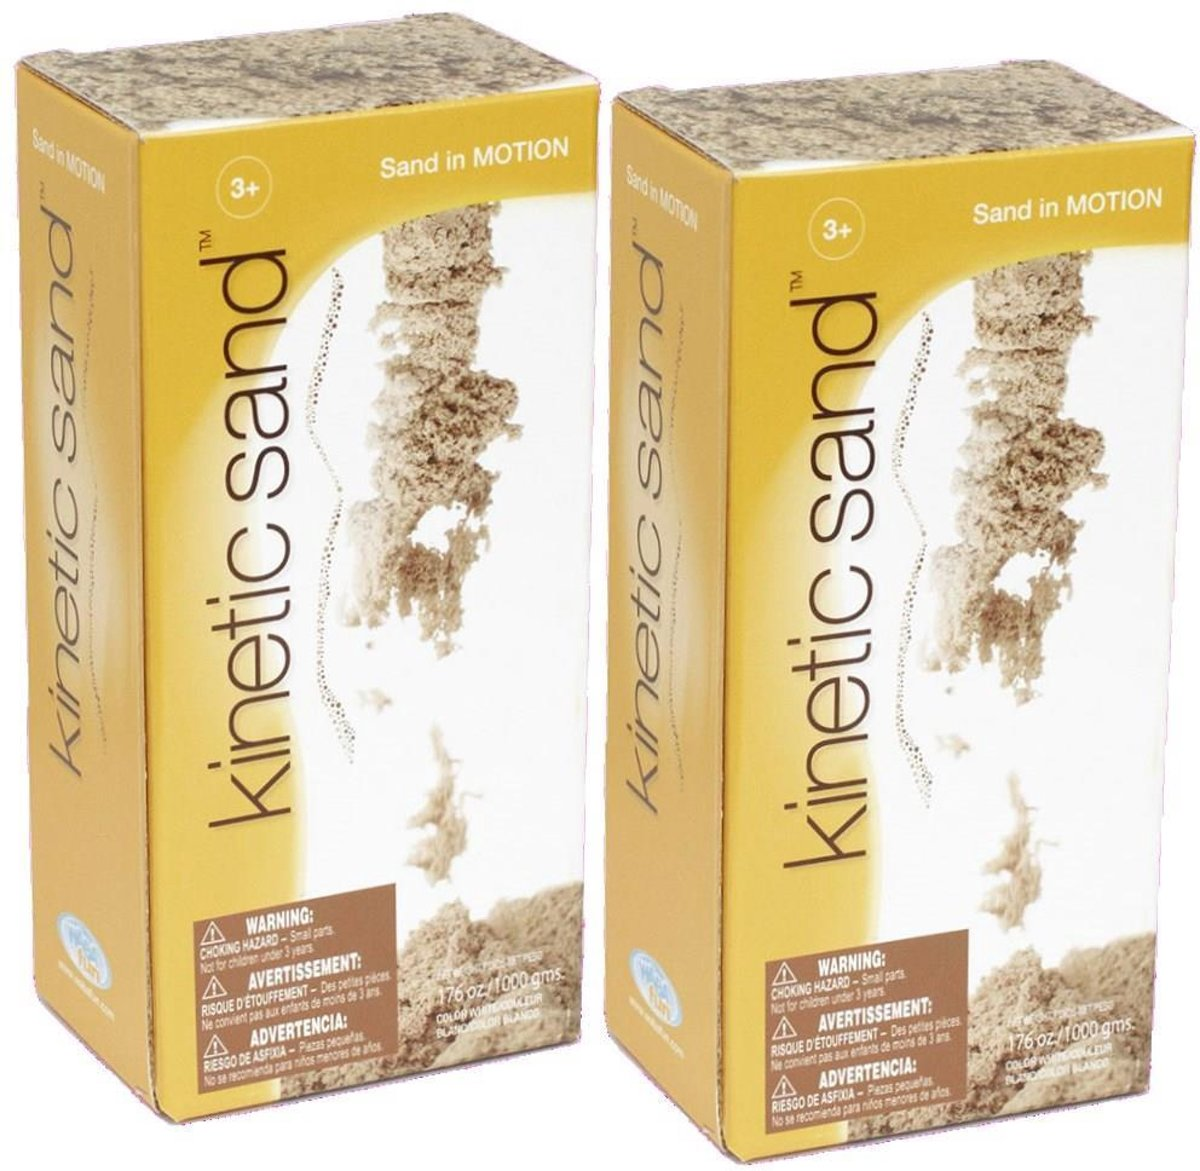 Plustoys Kinetic Sand 2 x 1Kg